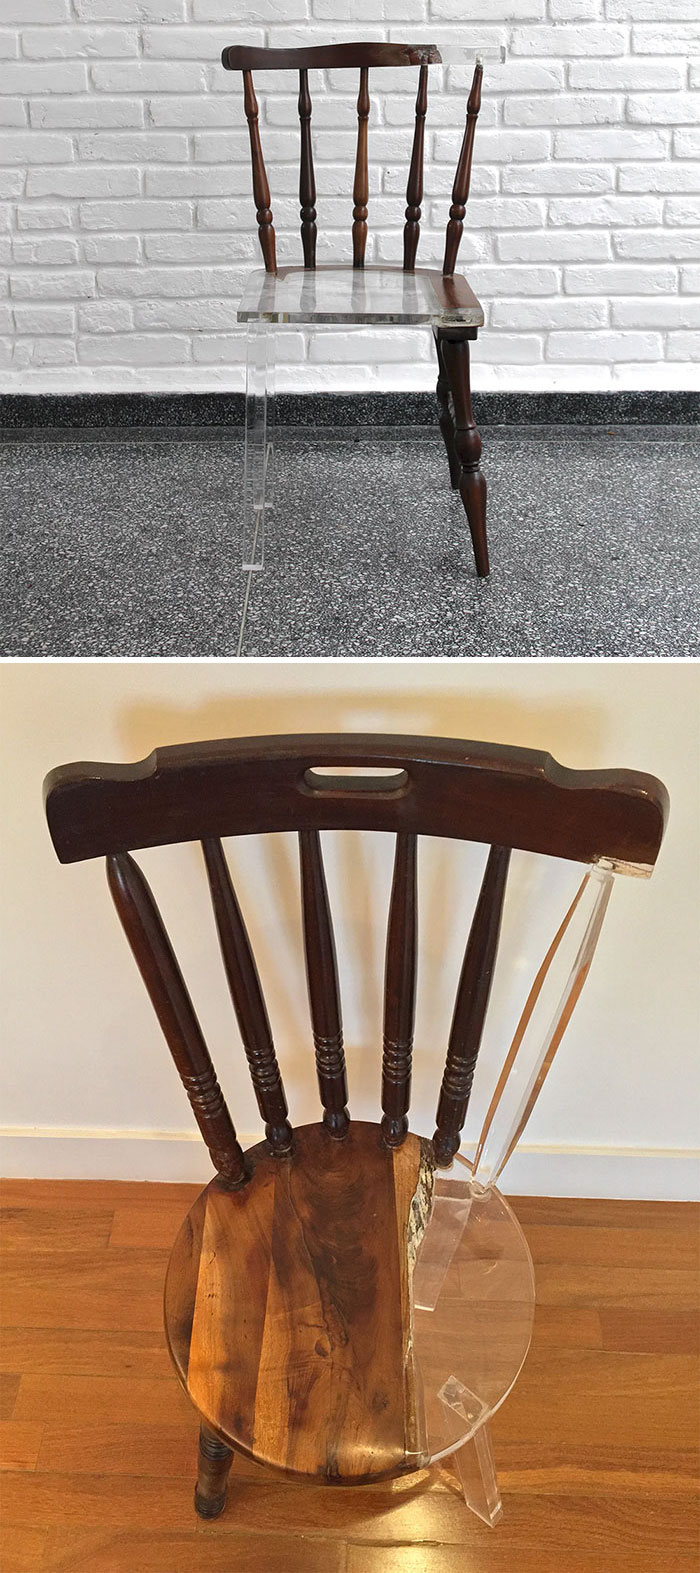 "Artist ""Fixes"" Broken Wood Furniture With Translucent Materials"